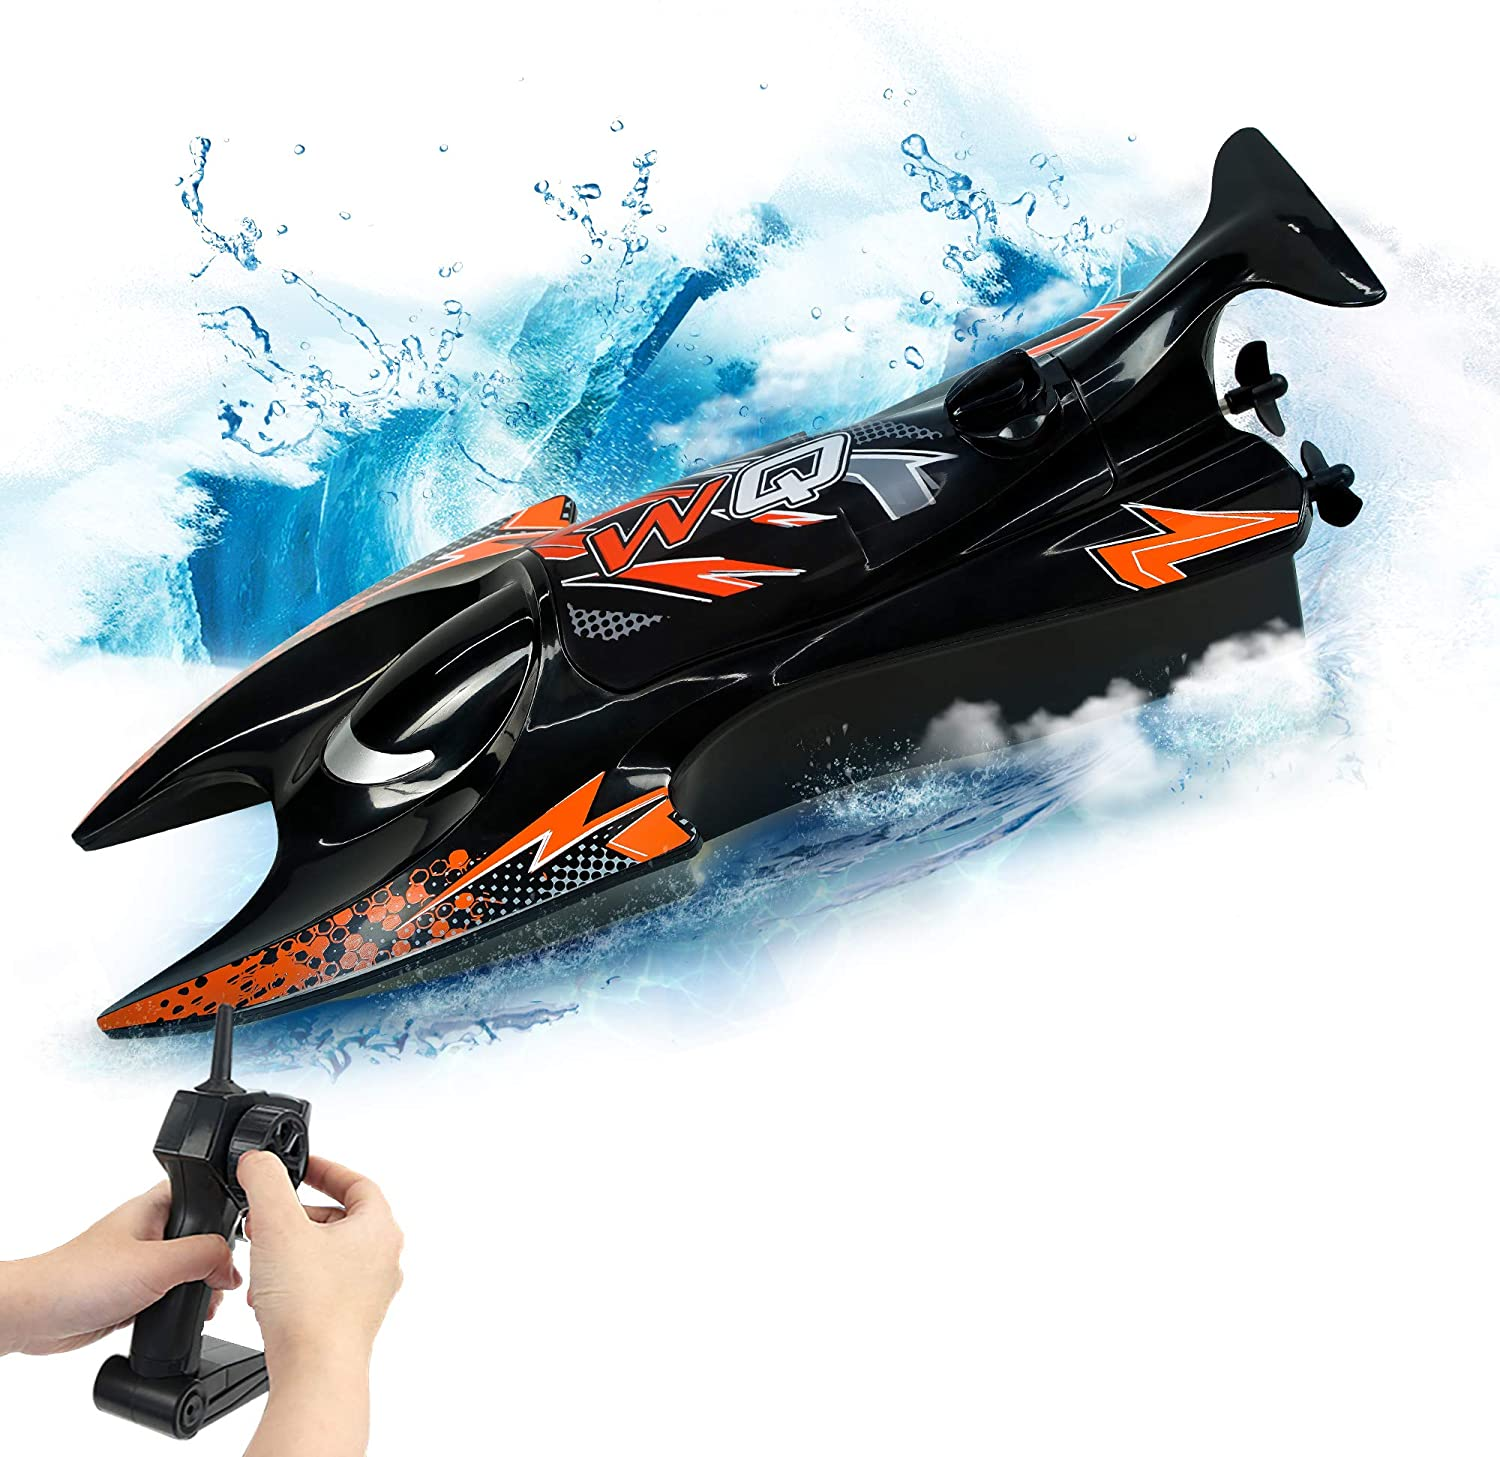 RC Boat Toy 2.4Hz Remote Control Speed Boat Dual Motors Self-Righting Racing Boat 15KM/H RC Ship Speedboat Toys for Adult & Kids